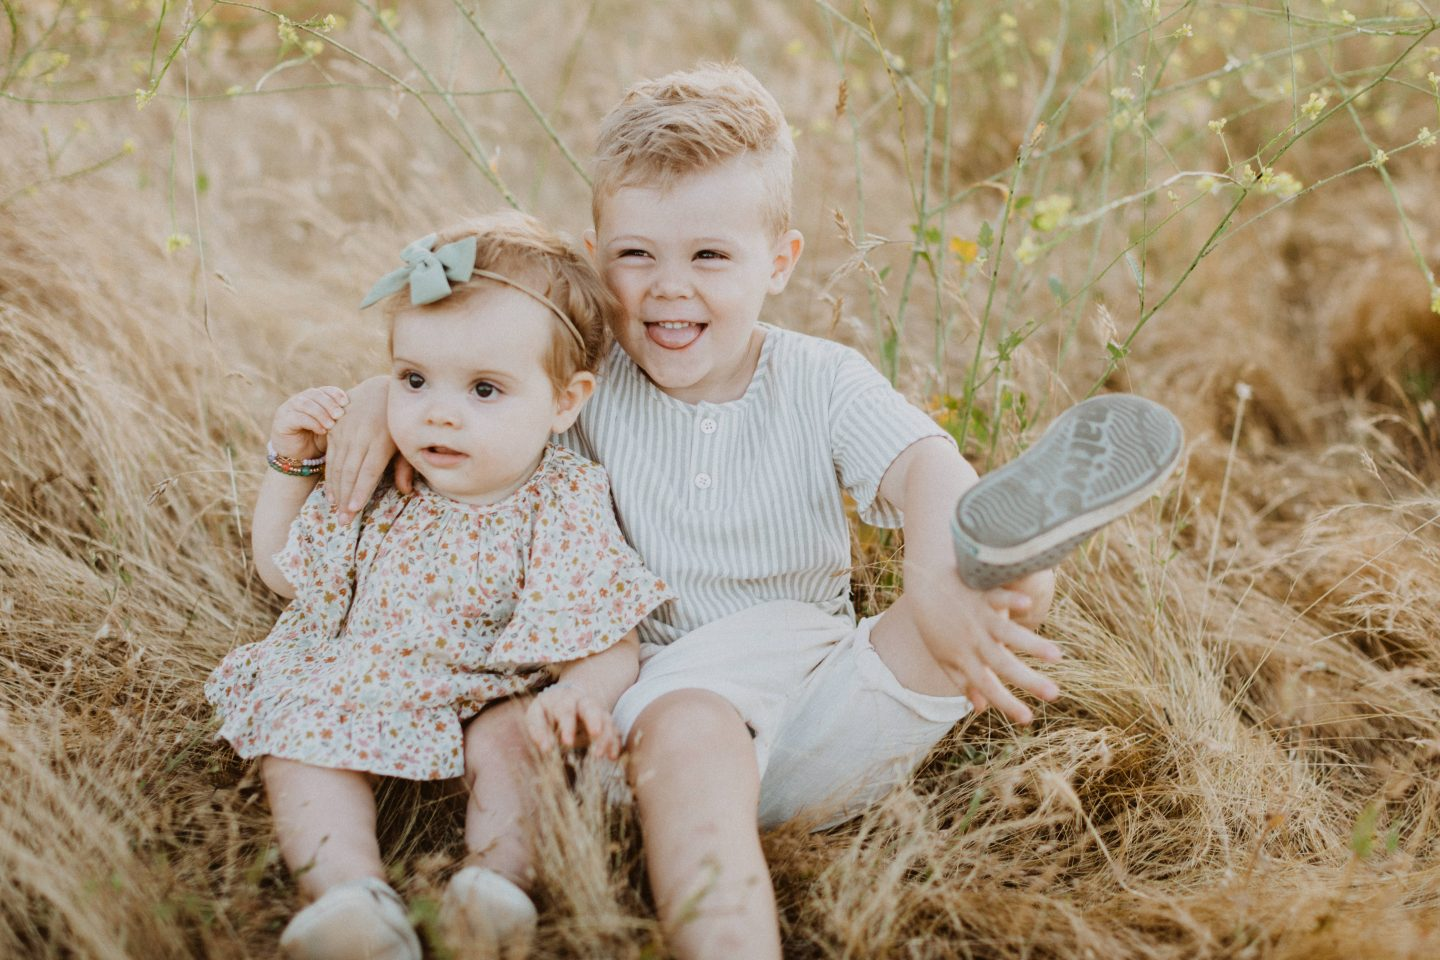 Family Photo Ideas by popular San Diego lifestyle blog, Navy Grace: image of a little boy and girl sitting together in a field and wearing Rylee and Cru clothing and Zappos Native Kids Shoes Jefferson.